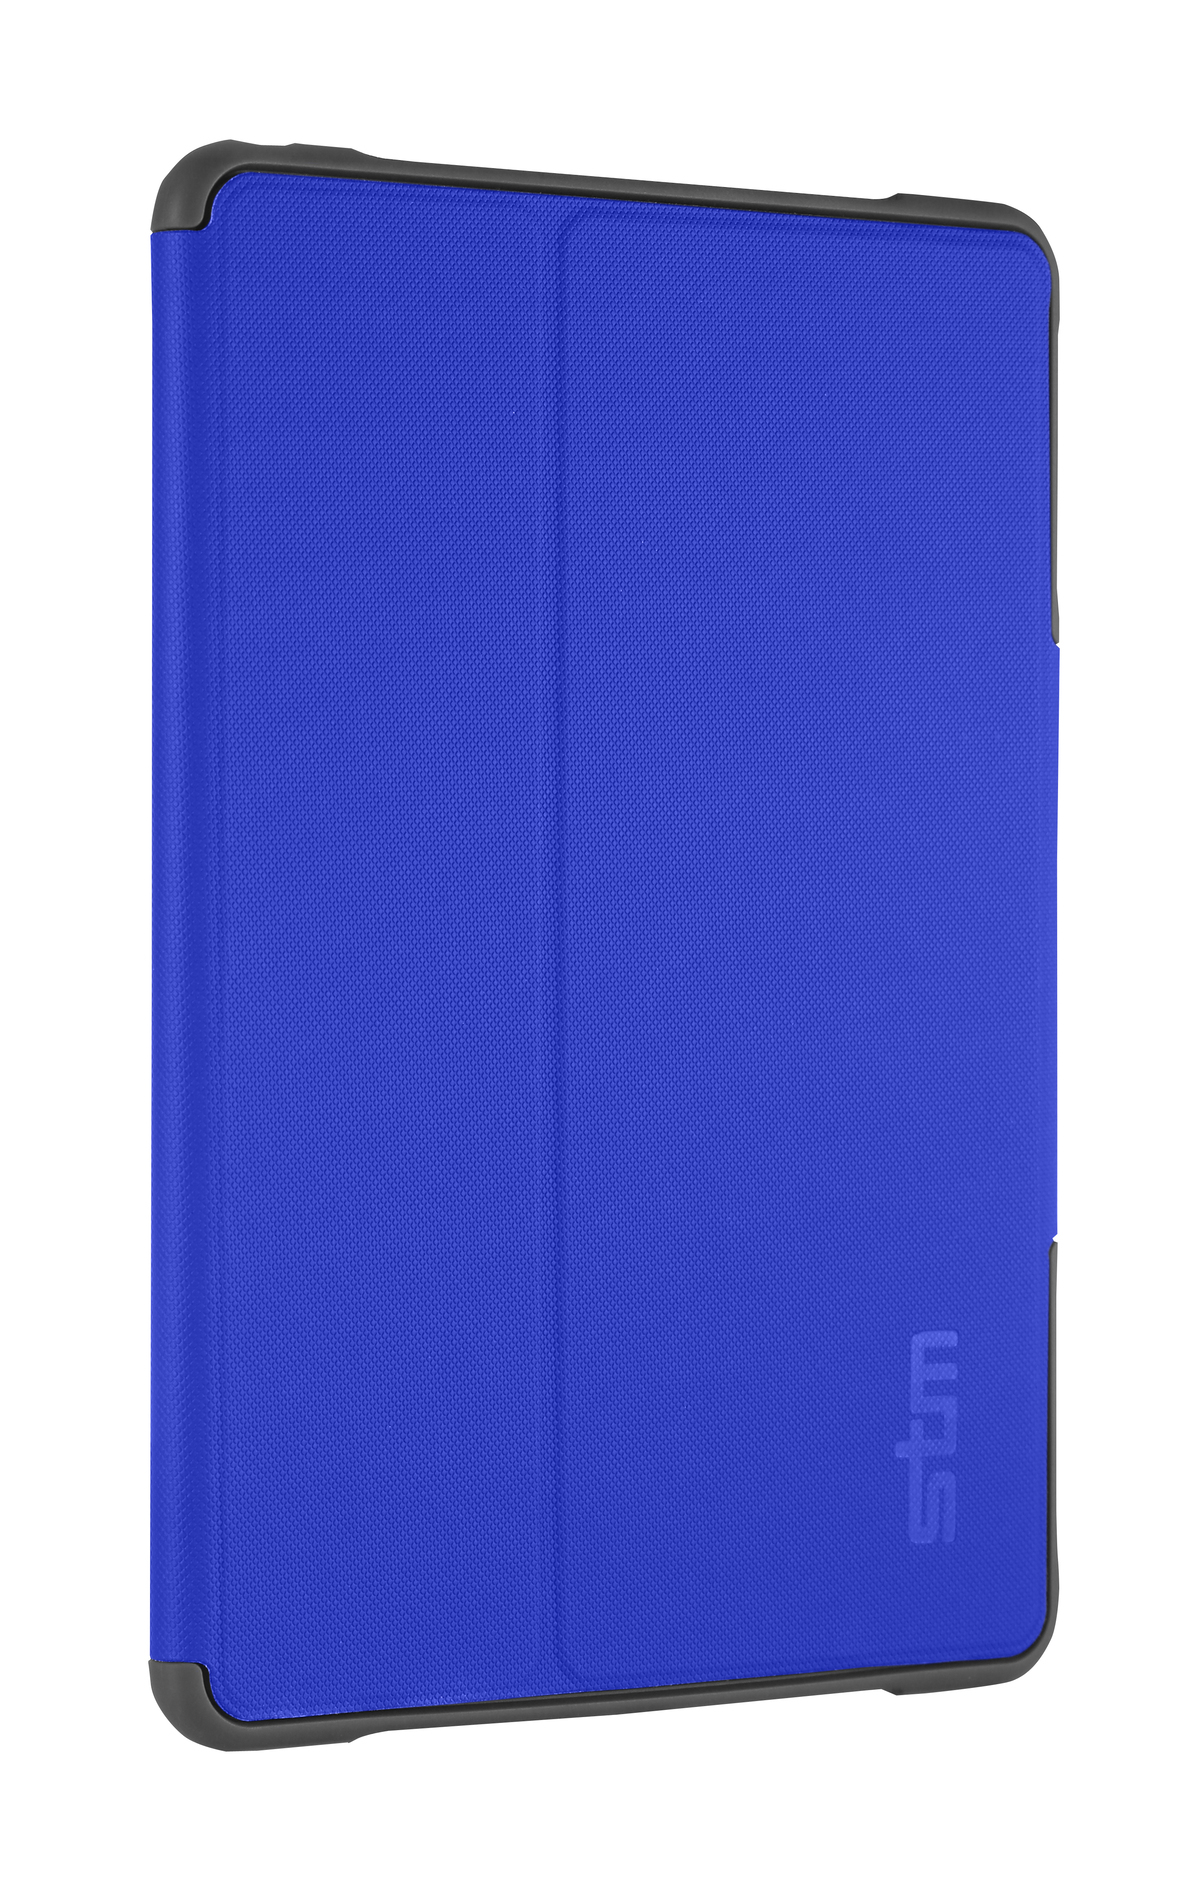 stm dux ipad air 2 front angle blue hires (2).jpg